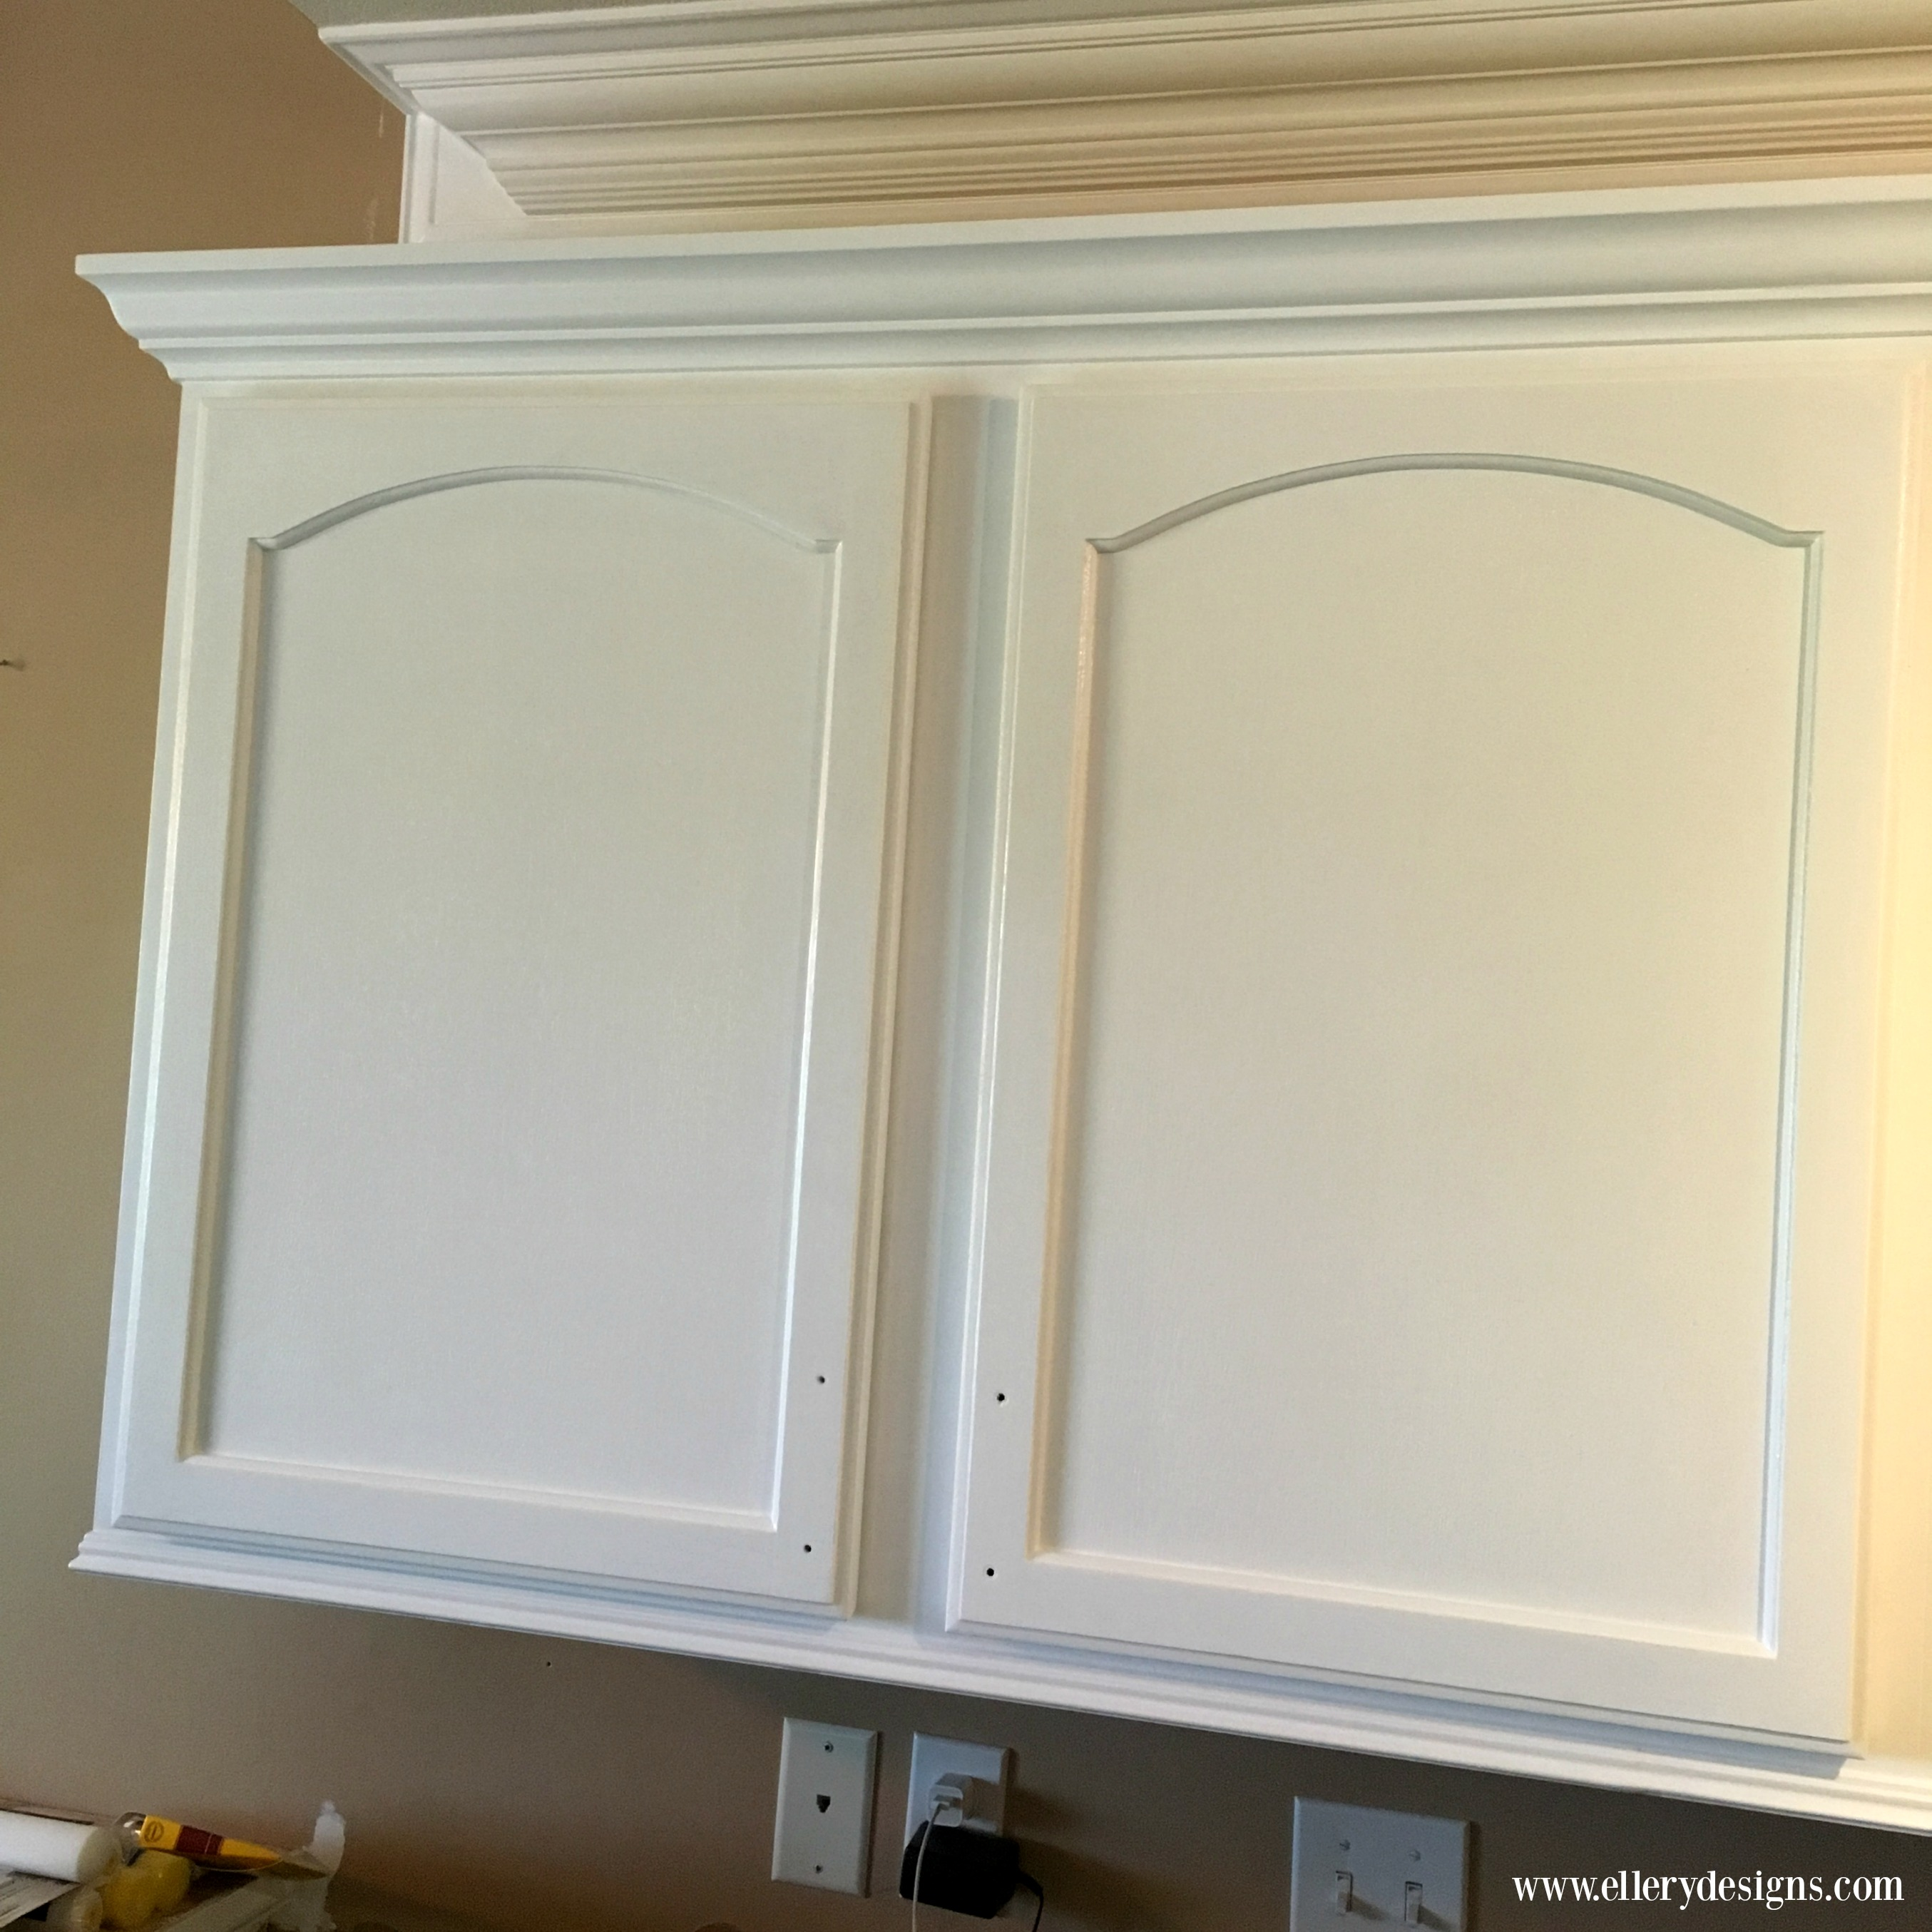 Our DIY Kitchen Remodel Painting Your Cabinets White – Ellery